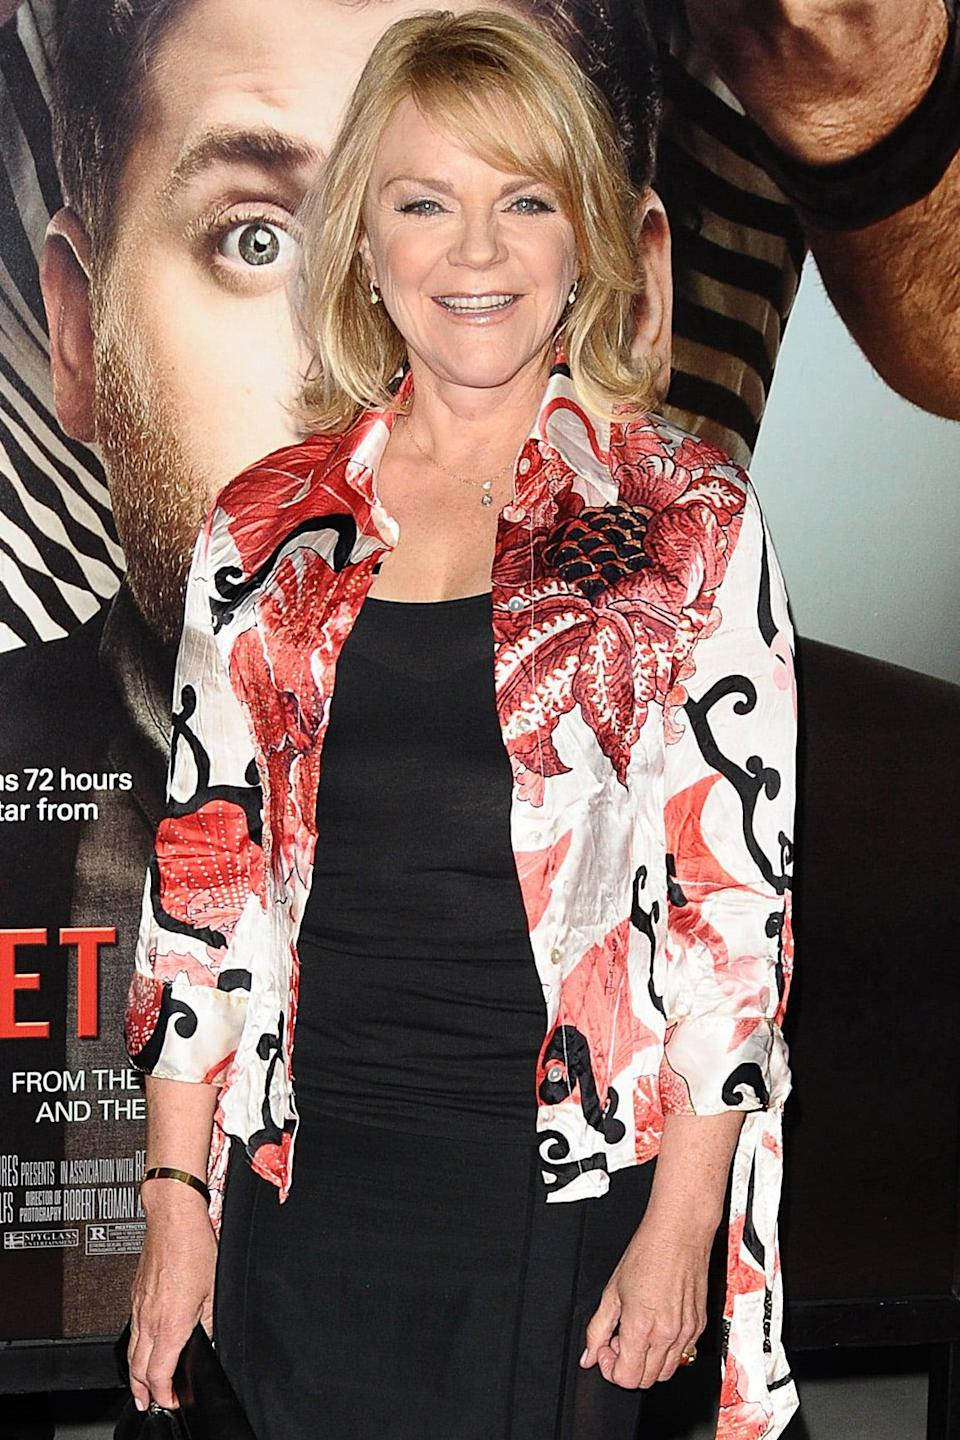 """<p>Stephanie Faracy has kept busy with guest roles on TV shows. She's been on everything from <strong>Desperate Housewives</strong> and <strong>Castle</strong> to <strong>How to Get Away With Murder</strong> and <strong>Sneaky Pete</strong>. Sadly, her onscreen counterpart in <b><a class=""""link rapid-noclick-resp"""" href=""""https://www.popsugar.co.uk/Hocus-Pocus"""" rel=""""nofollow noopener"""" target=""""_blank"""" data-ylk=""""slk:Hocus Pocus"""">Hocus Pocus</a></b>, Charles Rocket, died in 2005.</p>"""